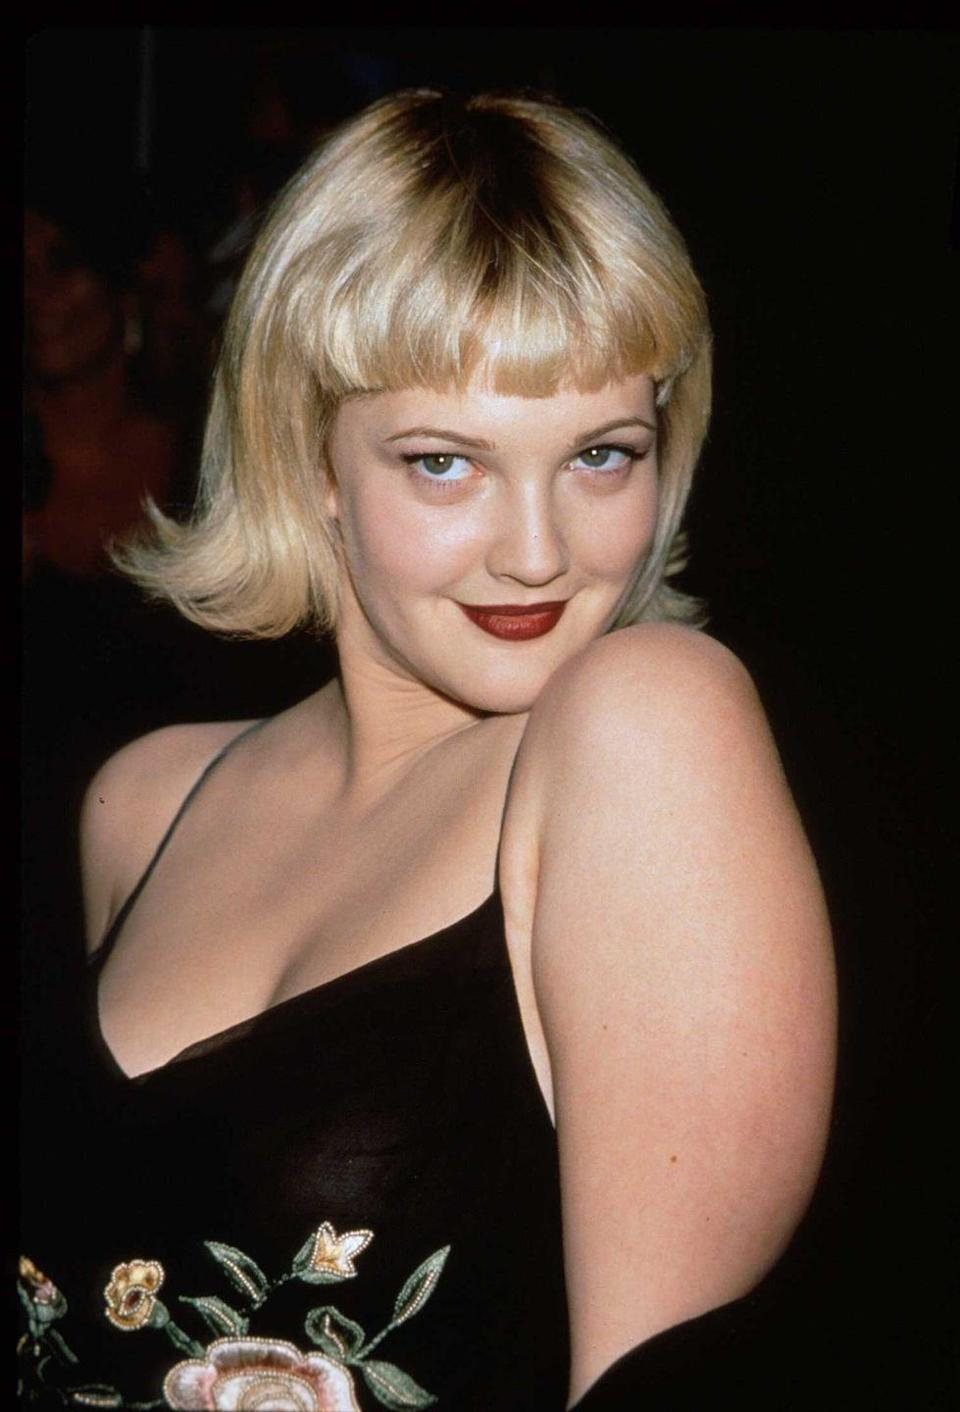 <p>Life of the party Drew Barrymore strikes a seductive pose at the premiere of her film <em>The Wedding Singer</em> in 1998. </p>